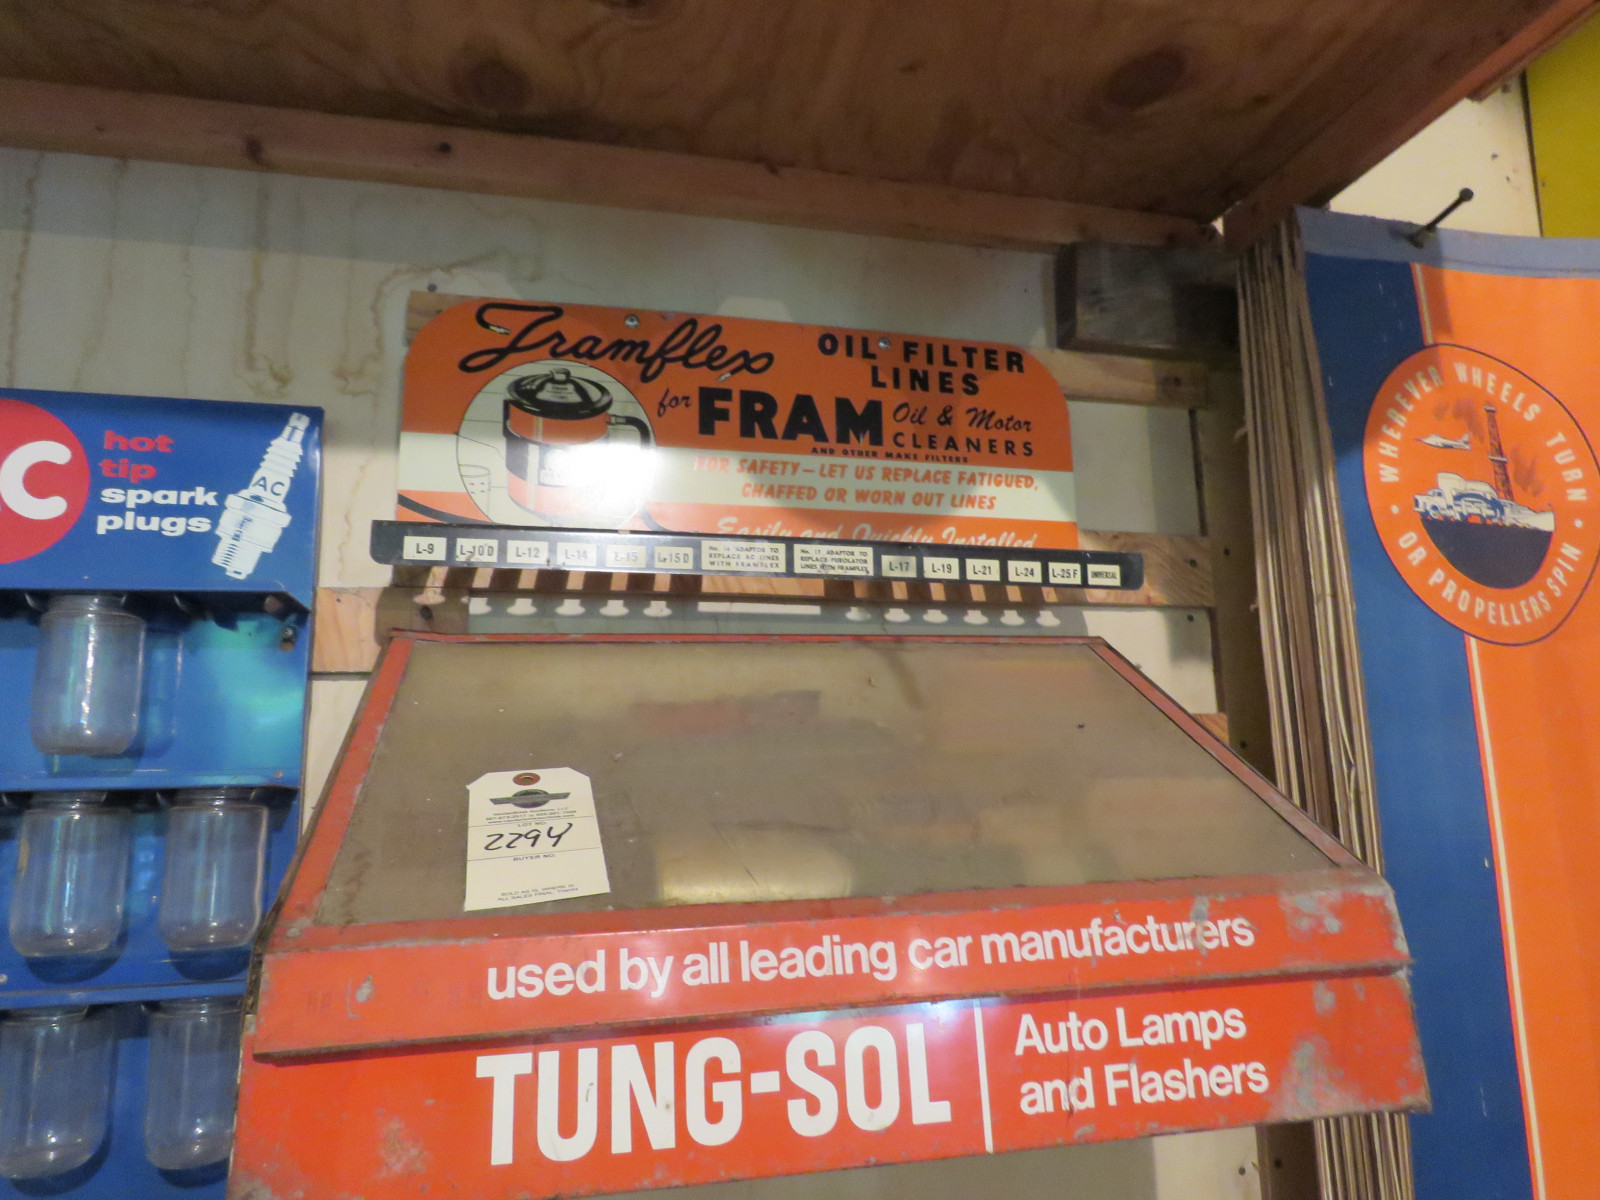 FRAM and Tungsol Display metal Rack - Image 1